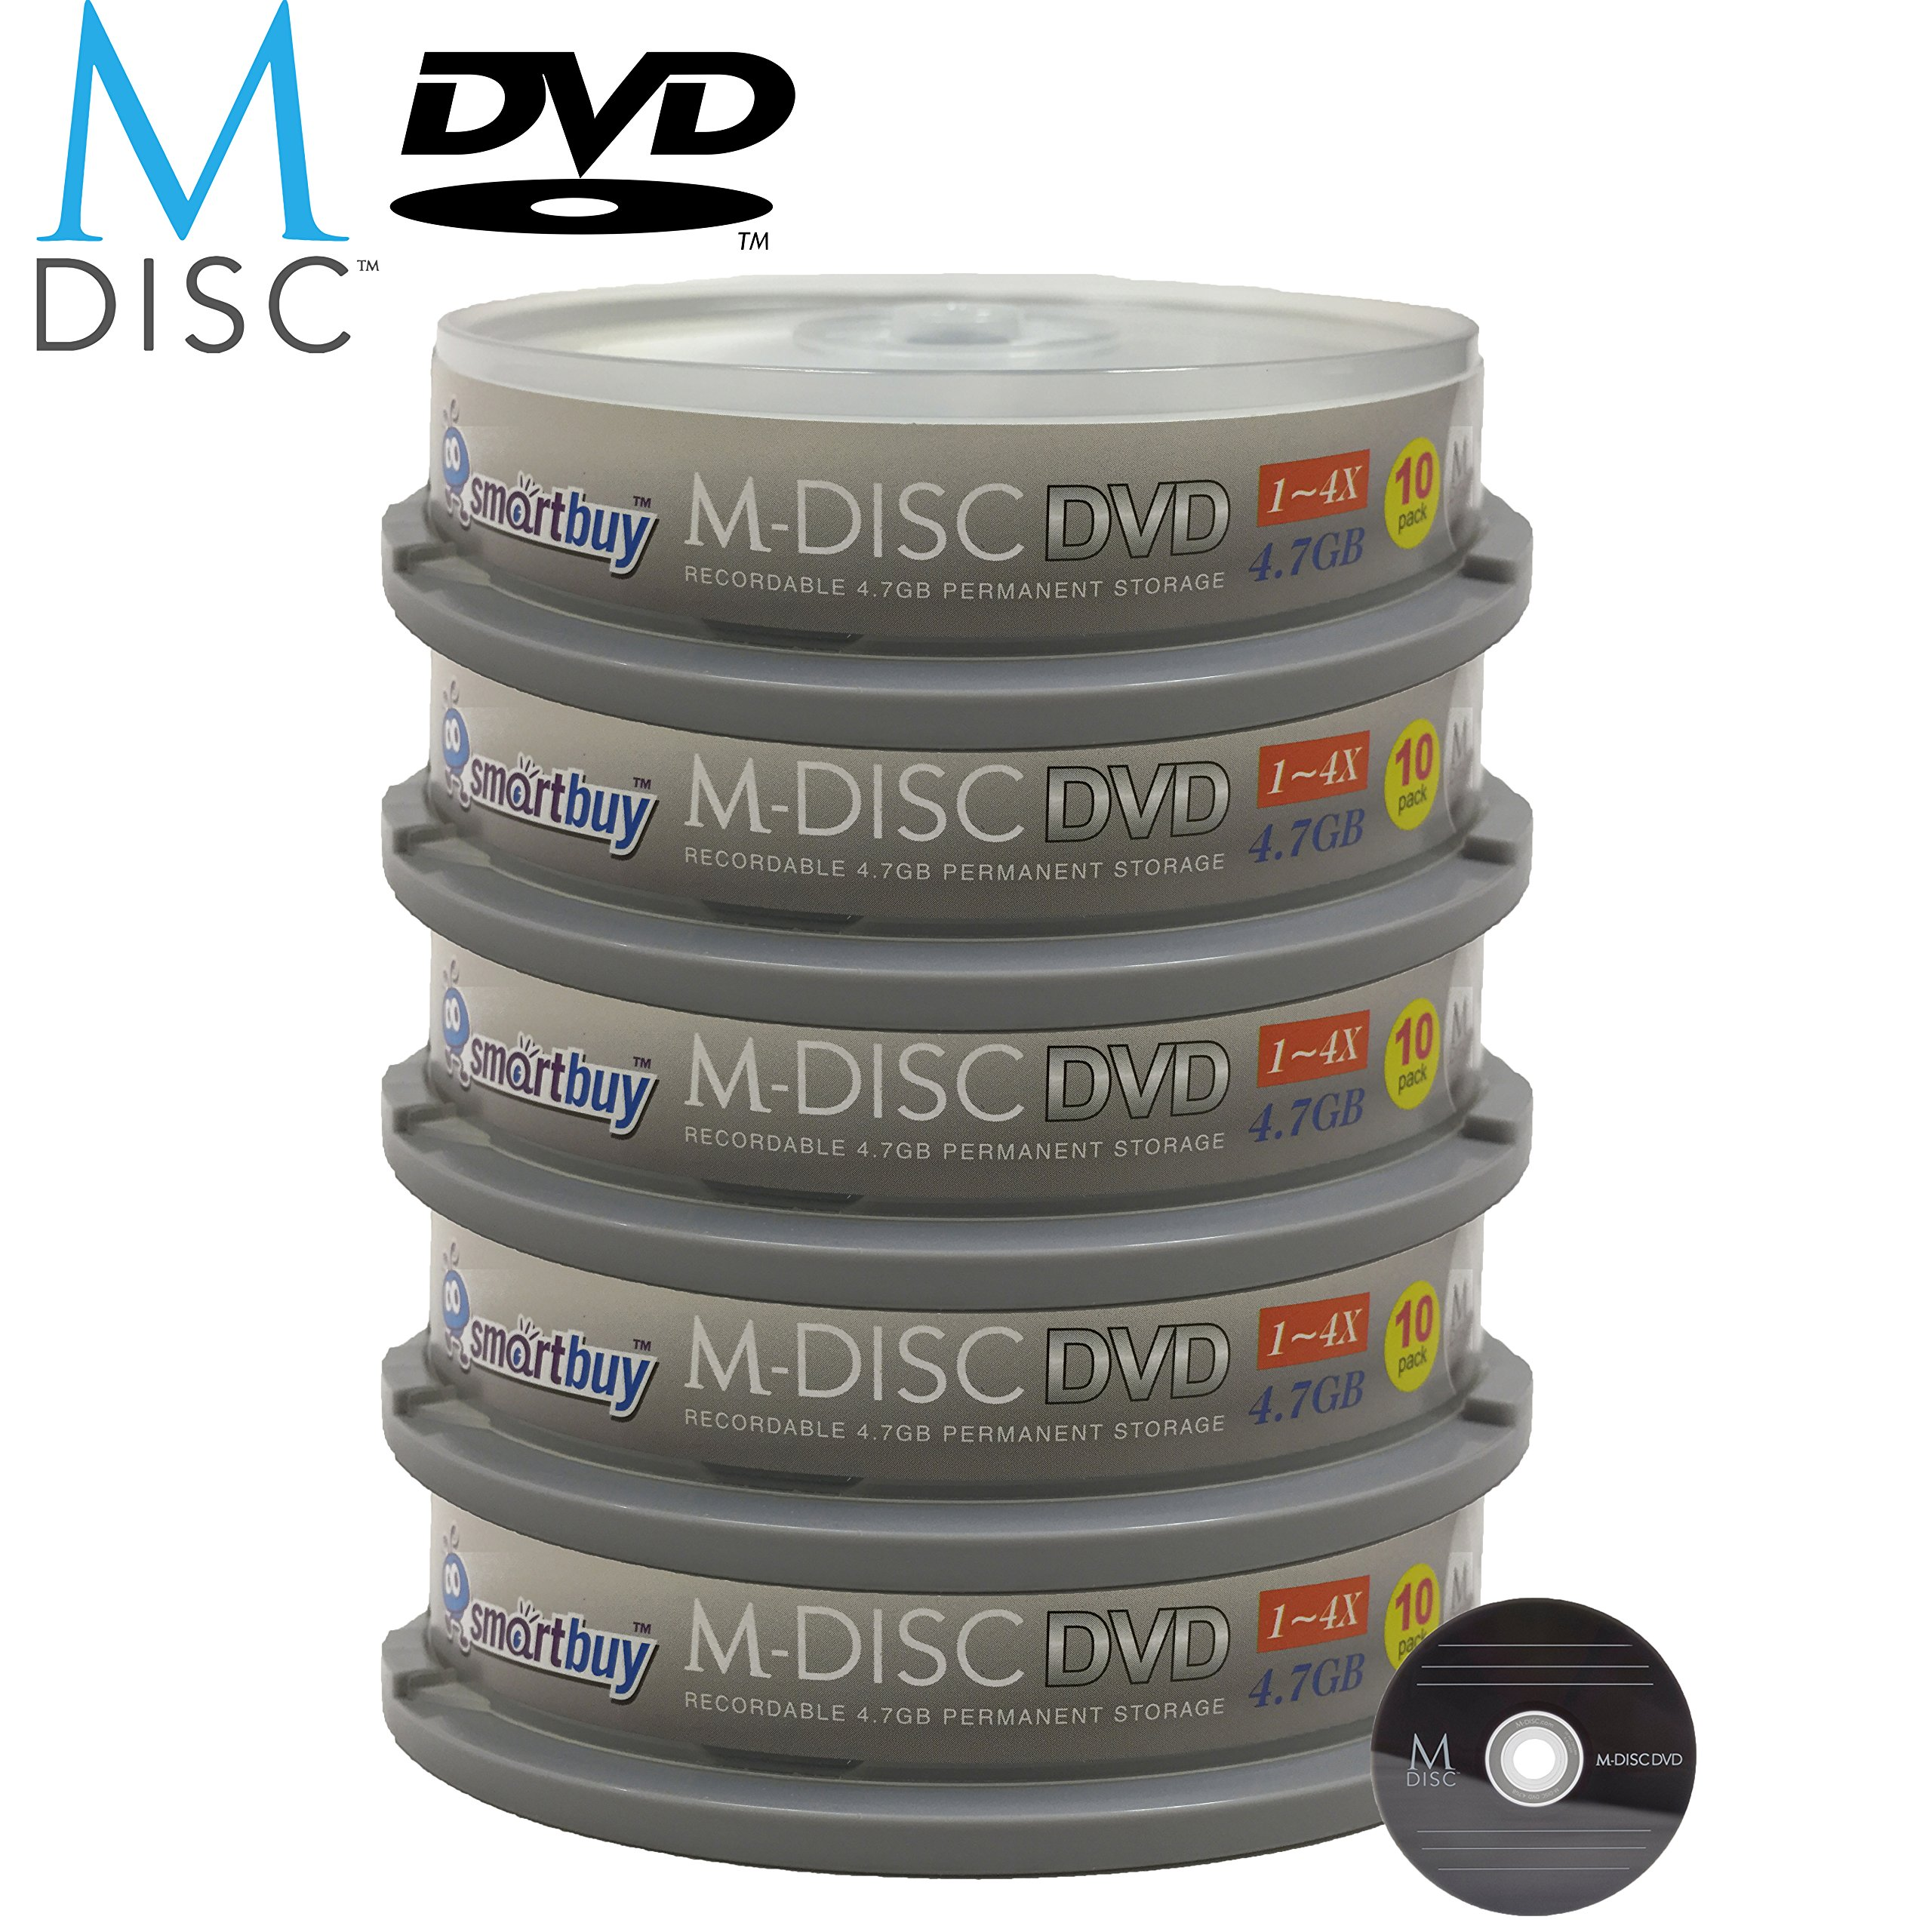 50 Pack Smartbuy M-Disc DVD 4.7GB 4X HD 1000 Year Permanent Data Archival / Backup Blank Media Recordable Disc